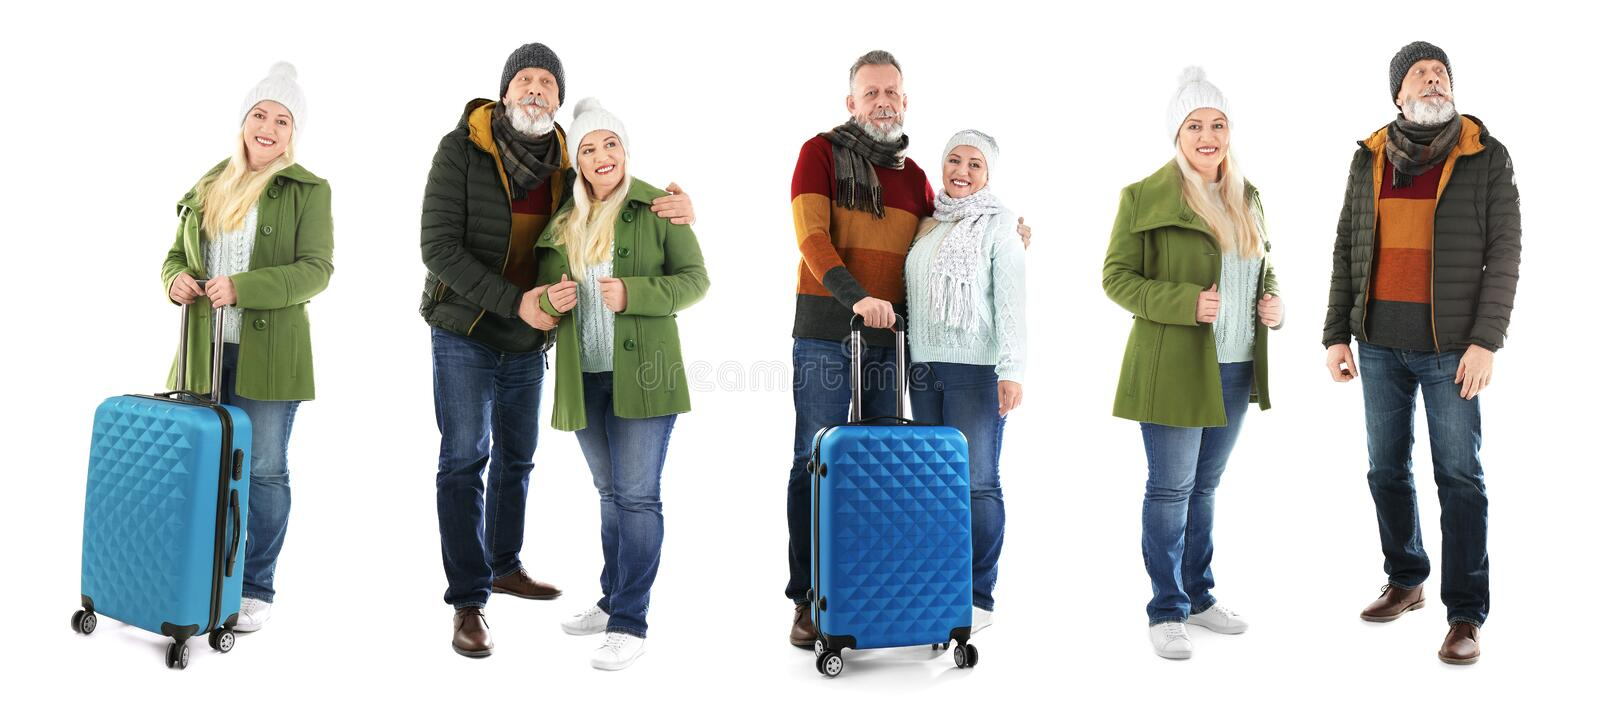 Set with people in warm clothes and suitcases on white background stock image